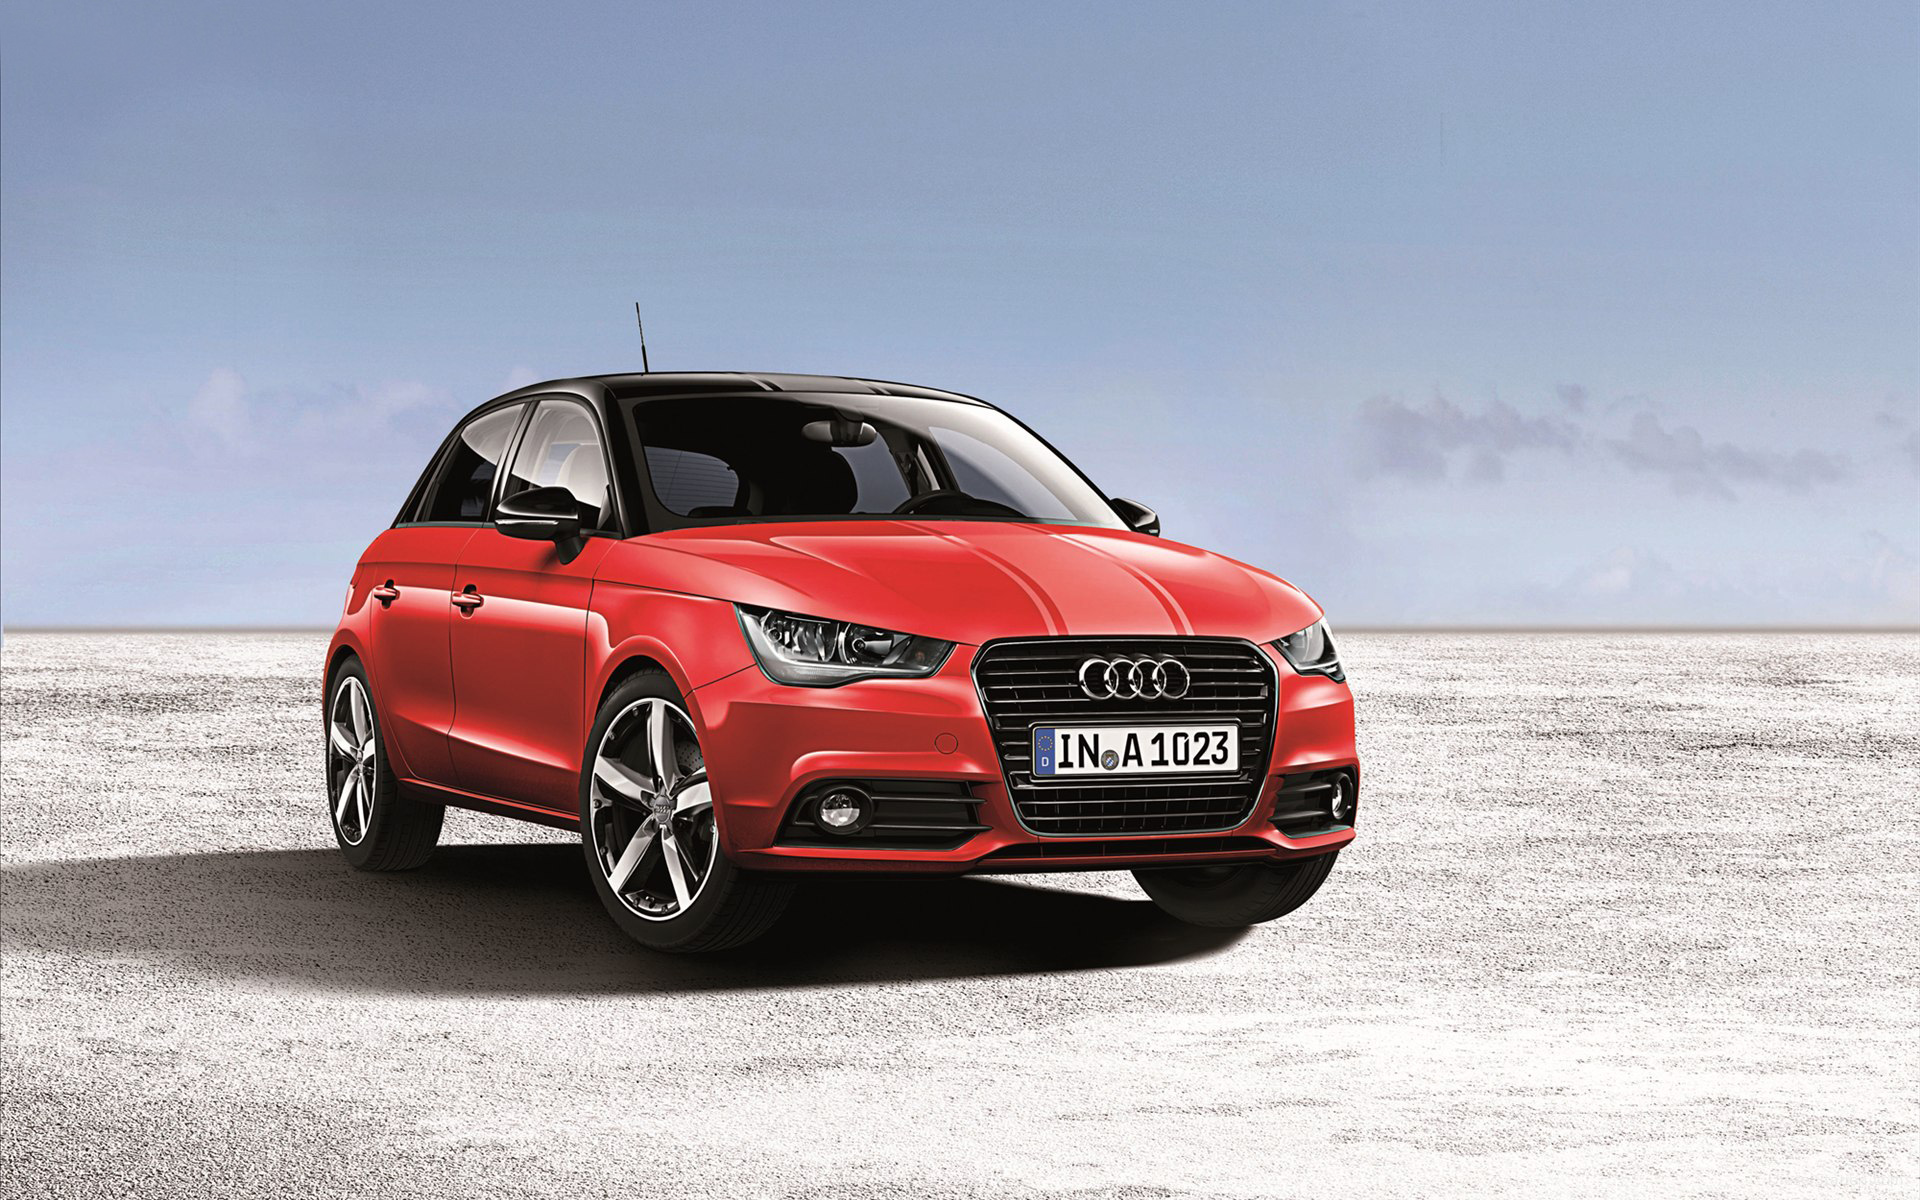 1920x1200 - Audi A1 Wallpapers 5